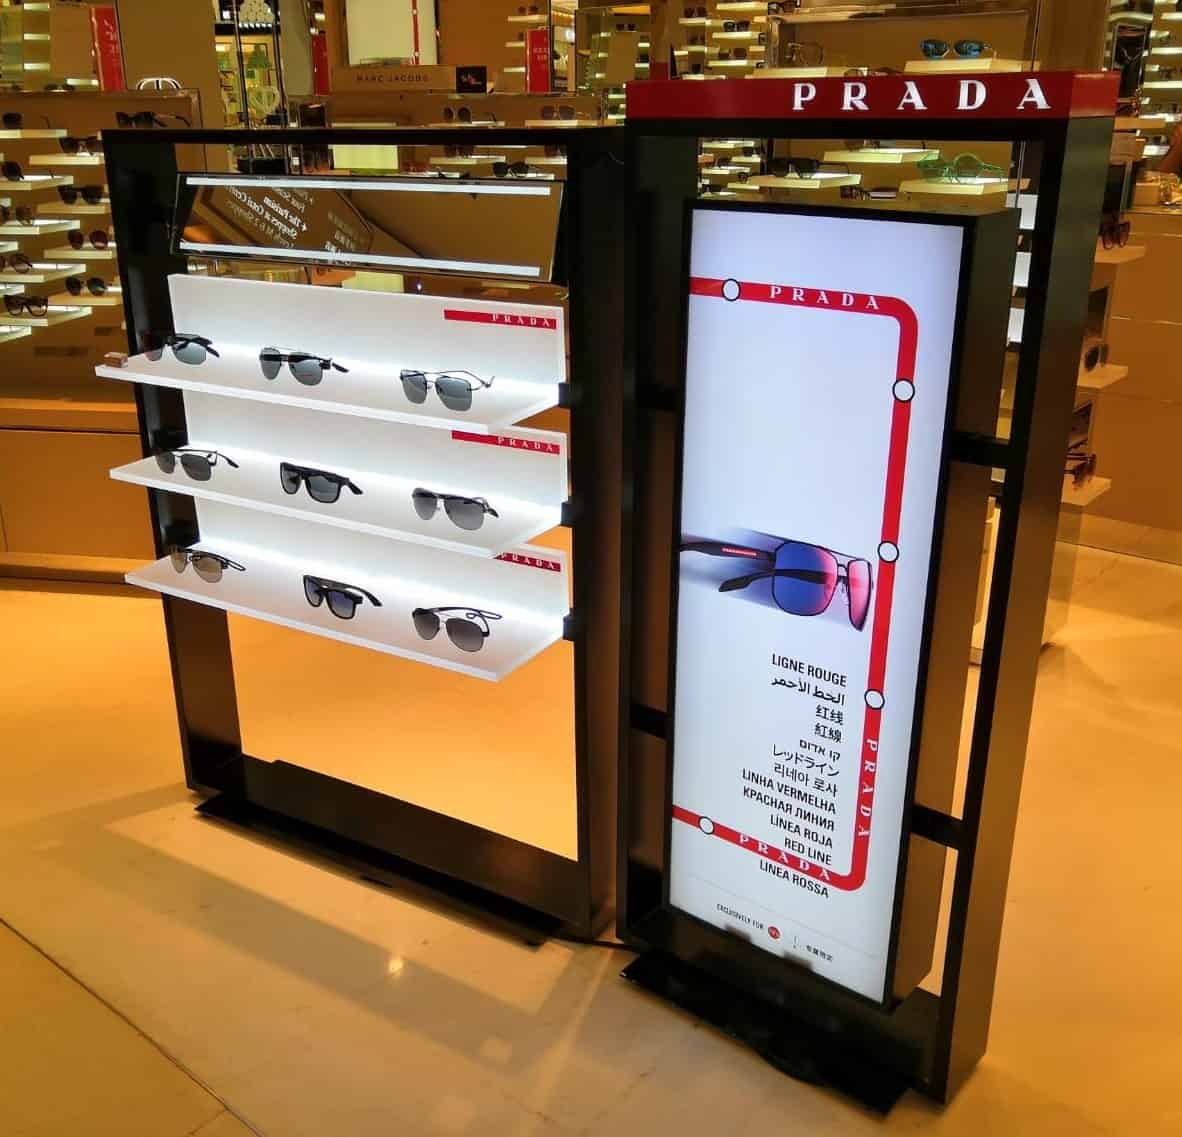 Luxottica and DFS offer travellers first look at new Prada sunglasses Featured Image